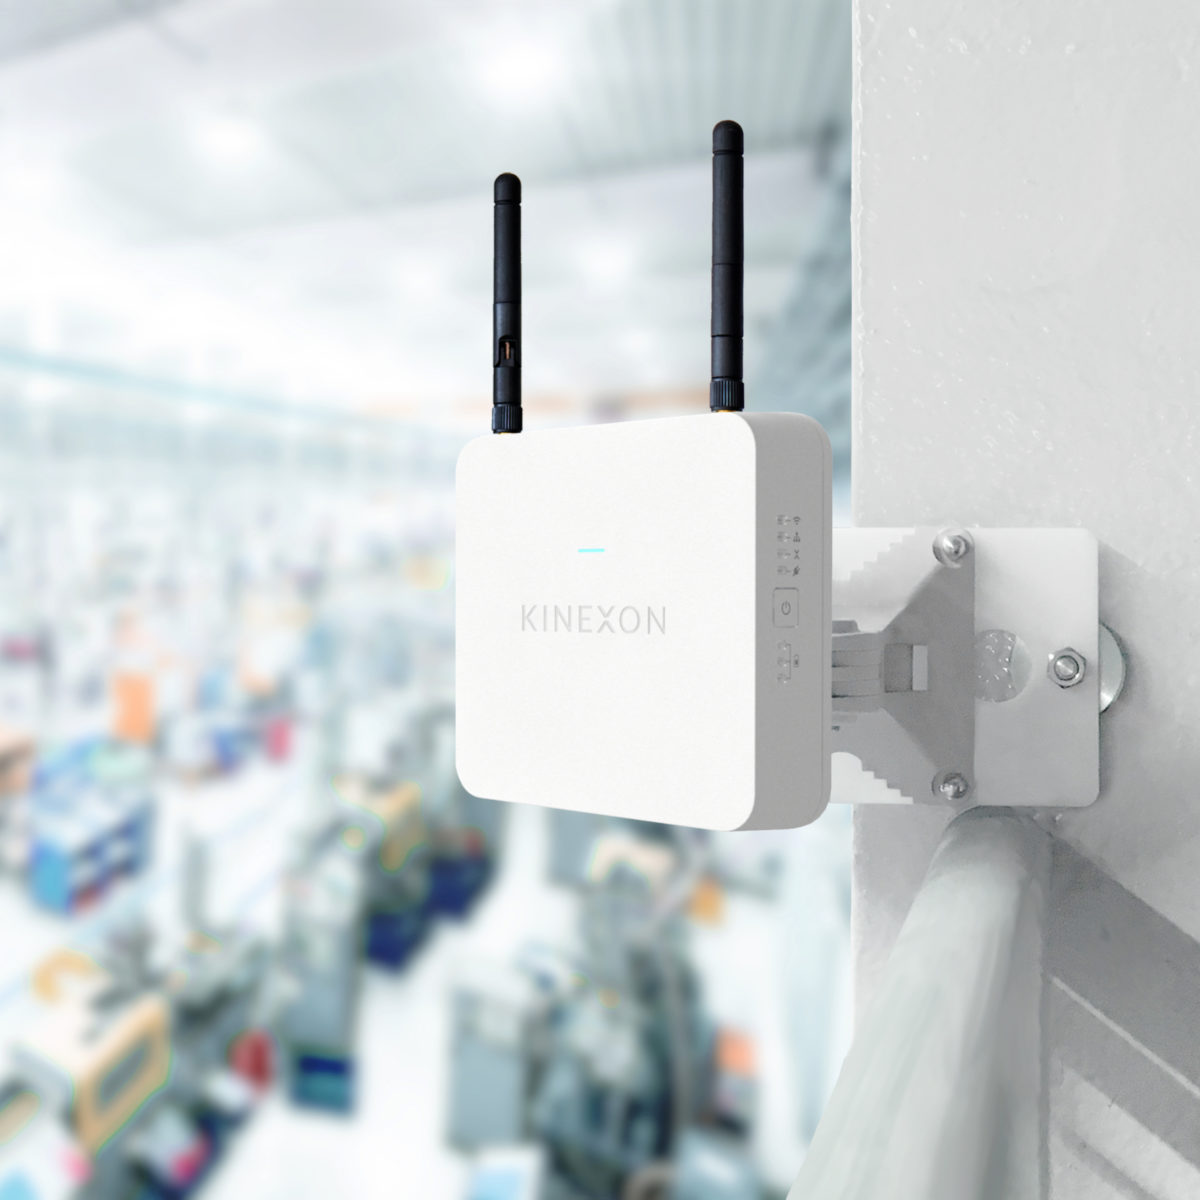 Kinexon Real-time locating system (RTLS) Anchor 8 in use of a large warehouse